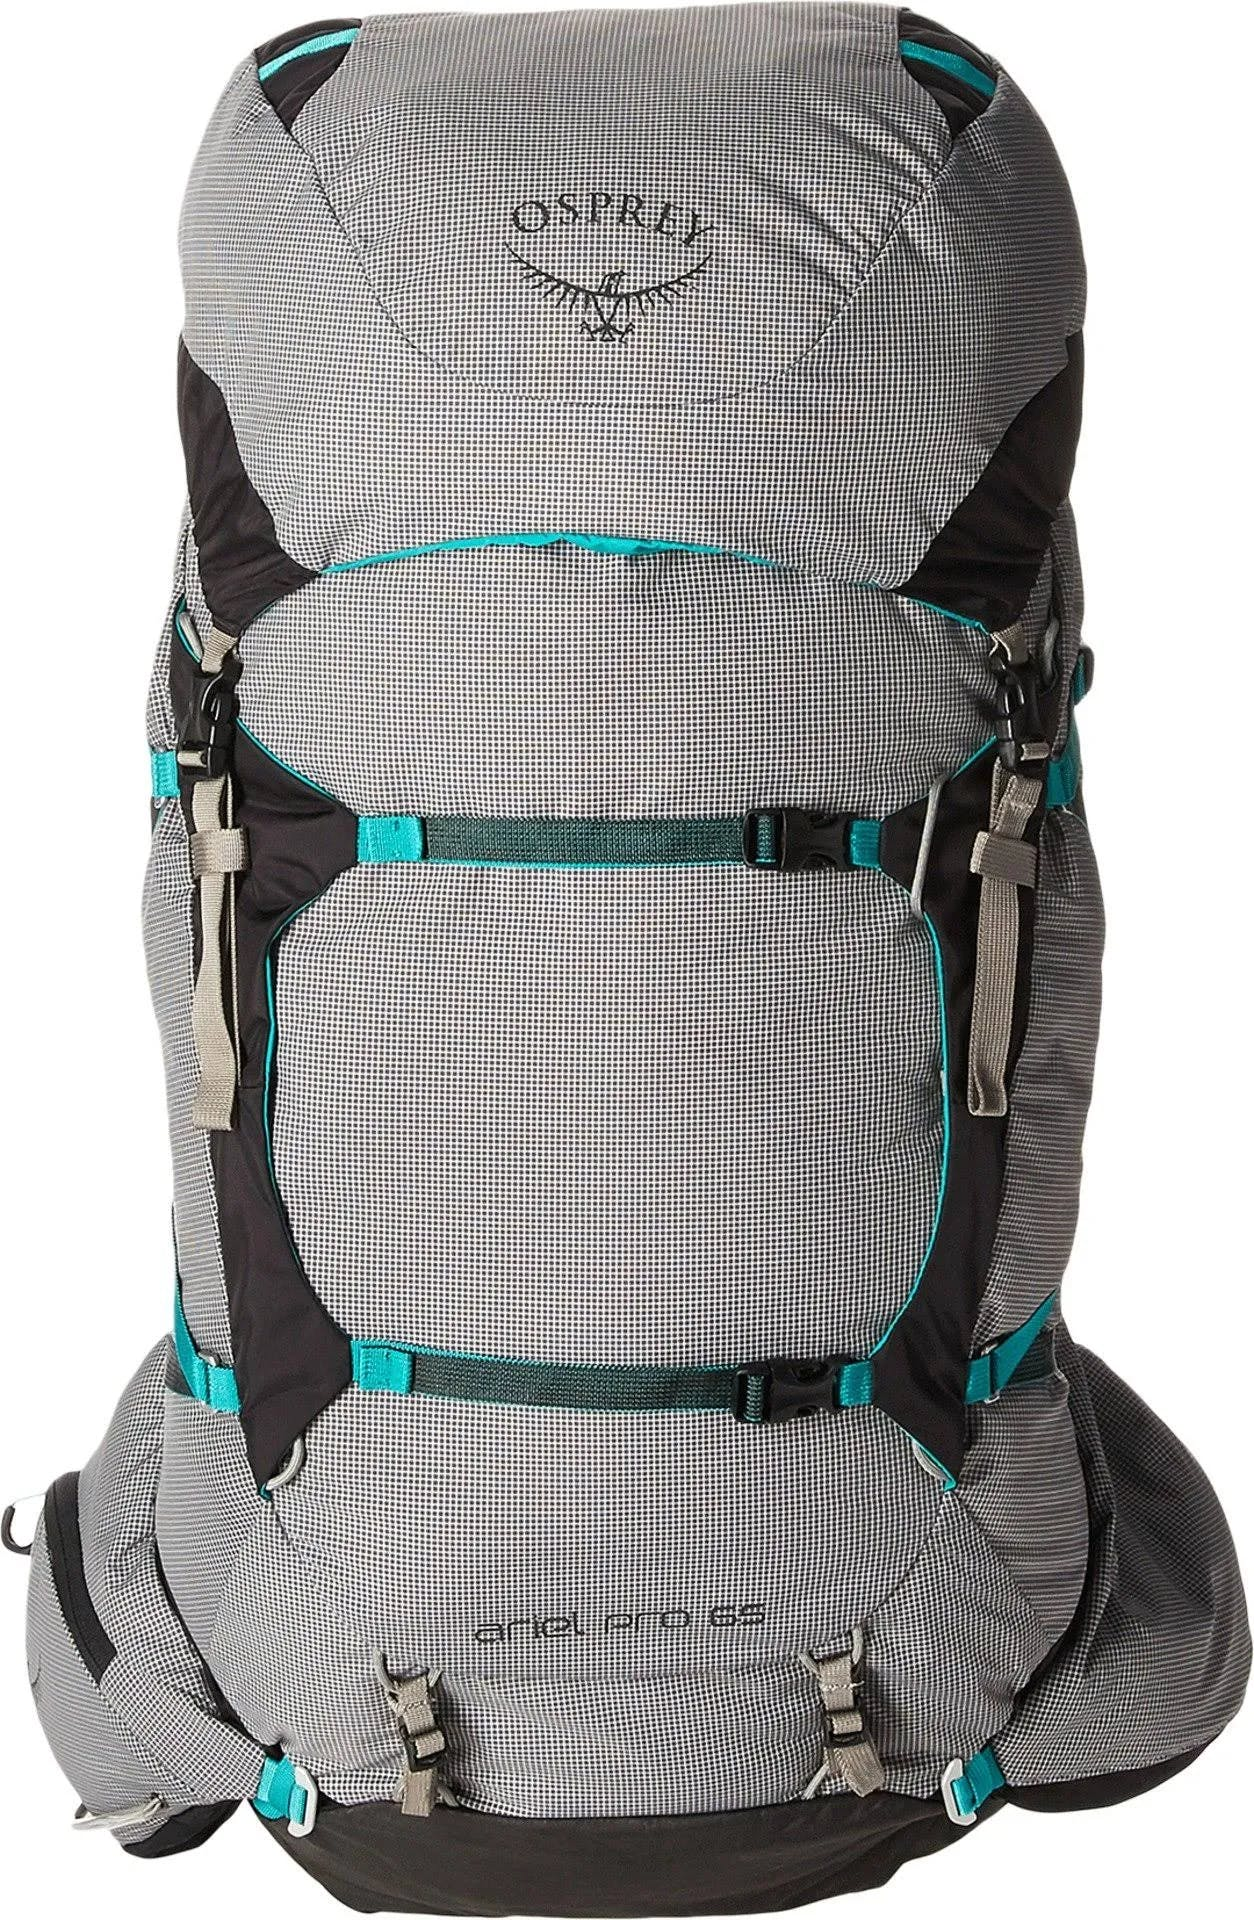 OSPREY - ARIEL PRO 65 WMNS PACK - X-SMALL - Voyager Grey